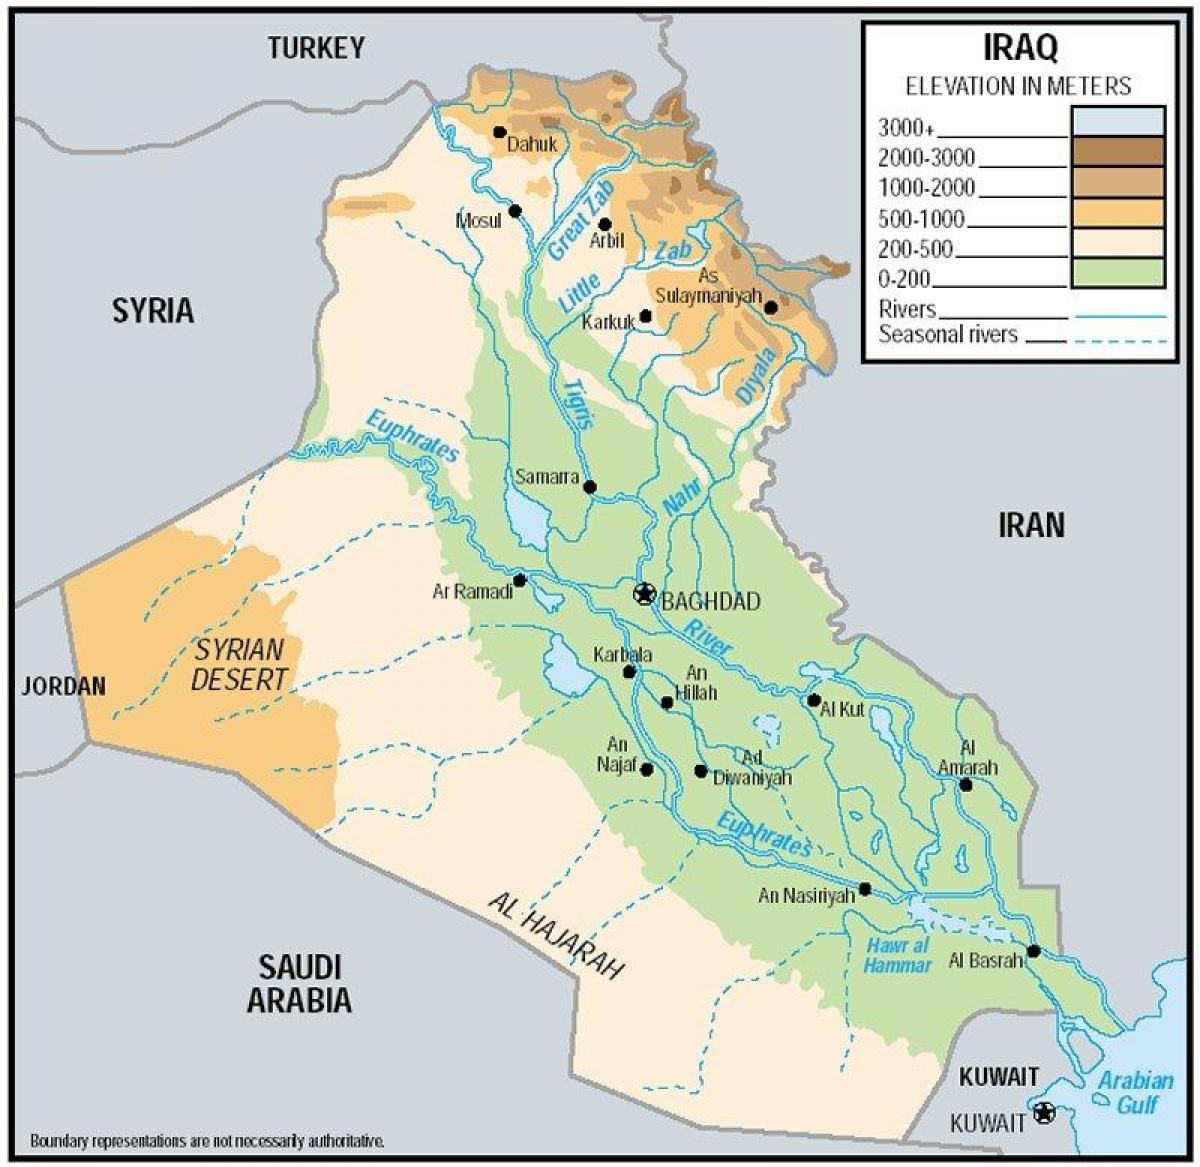 Map of Iraq elevation